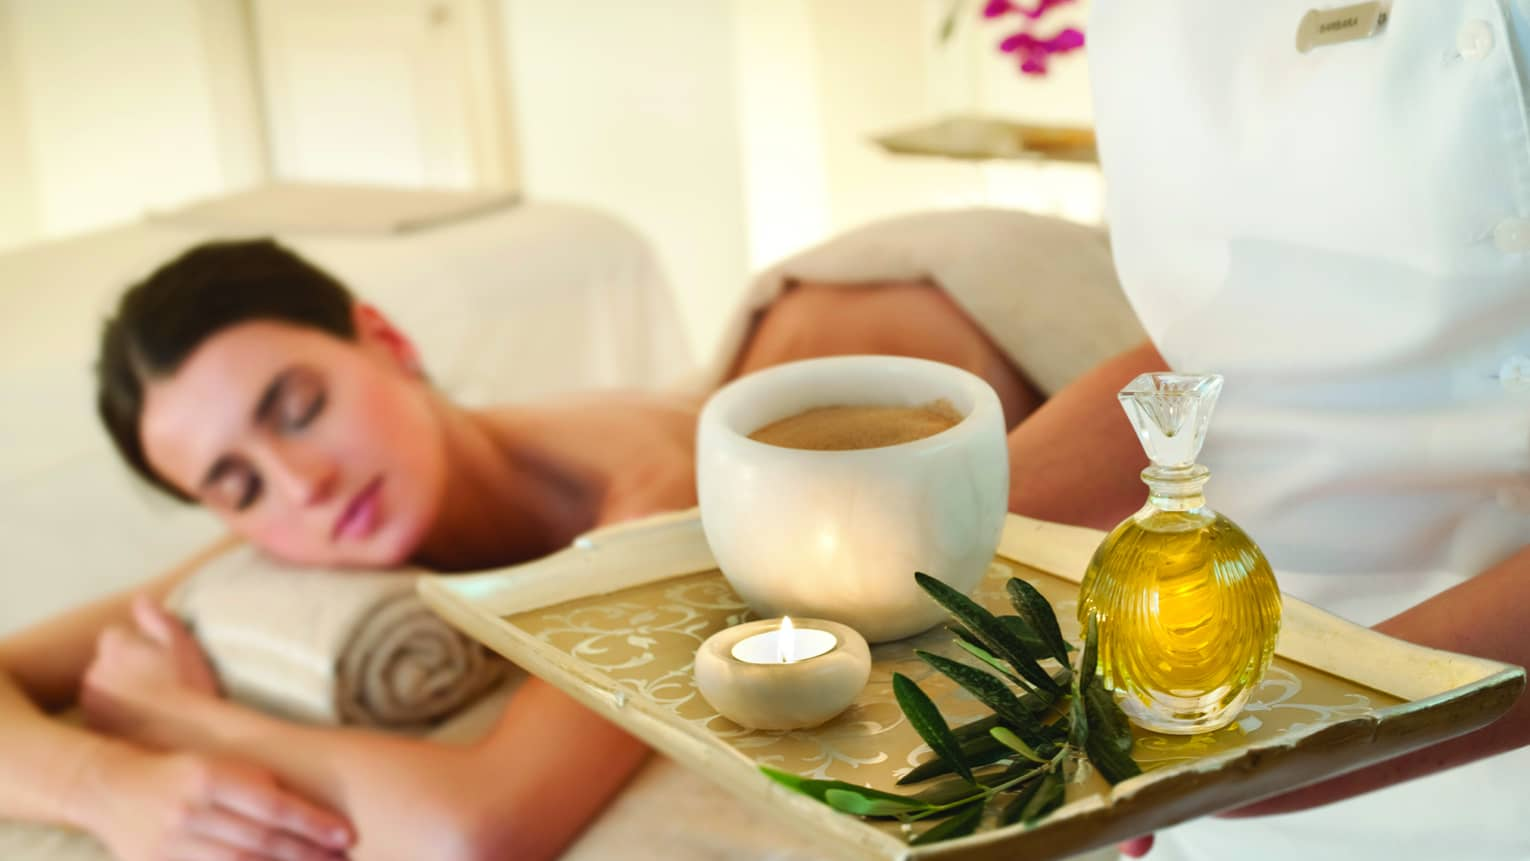 Spa staff holds tray with tealight candle, perfume, marble bowl near woman lying on massage table